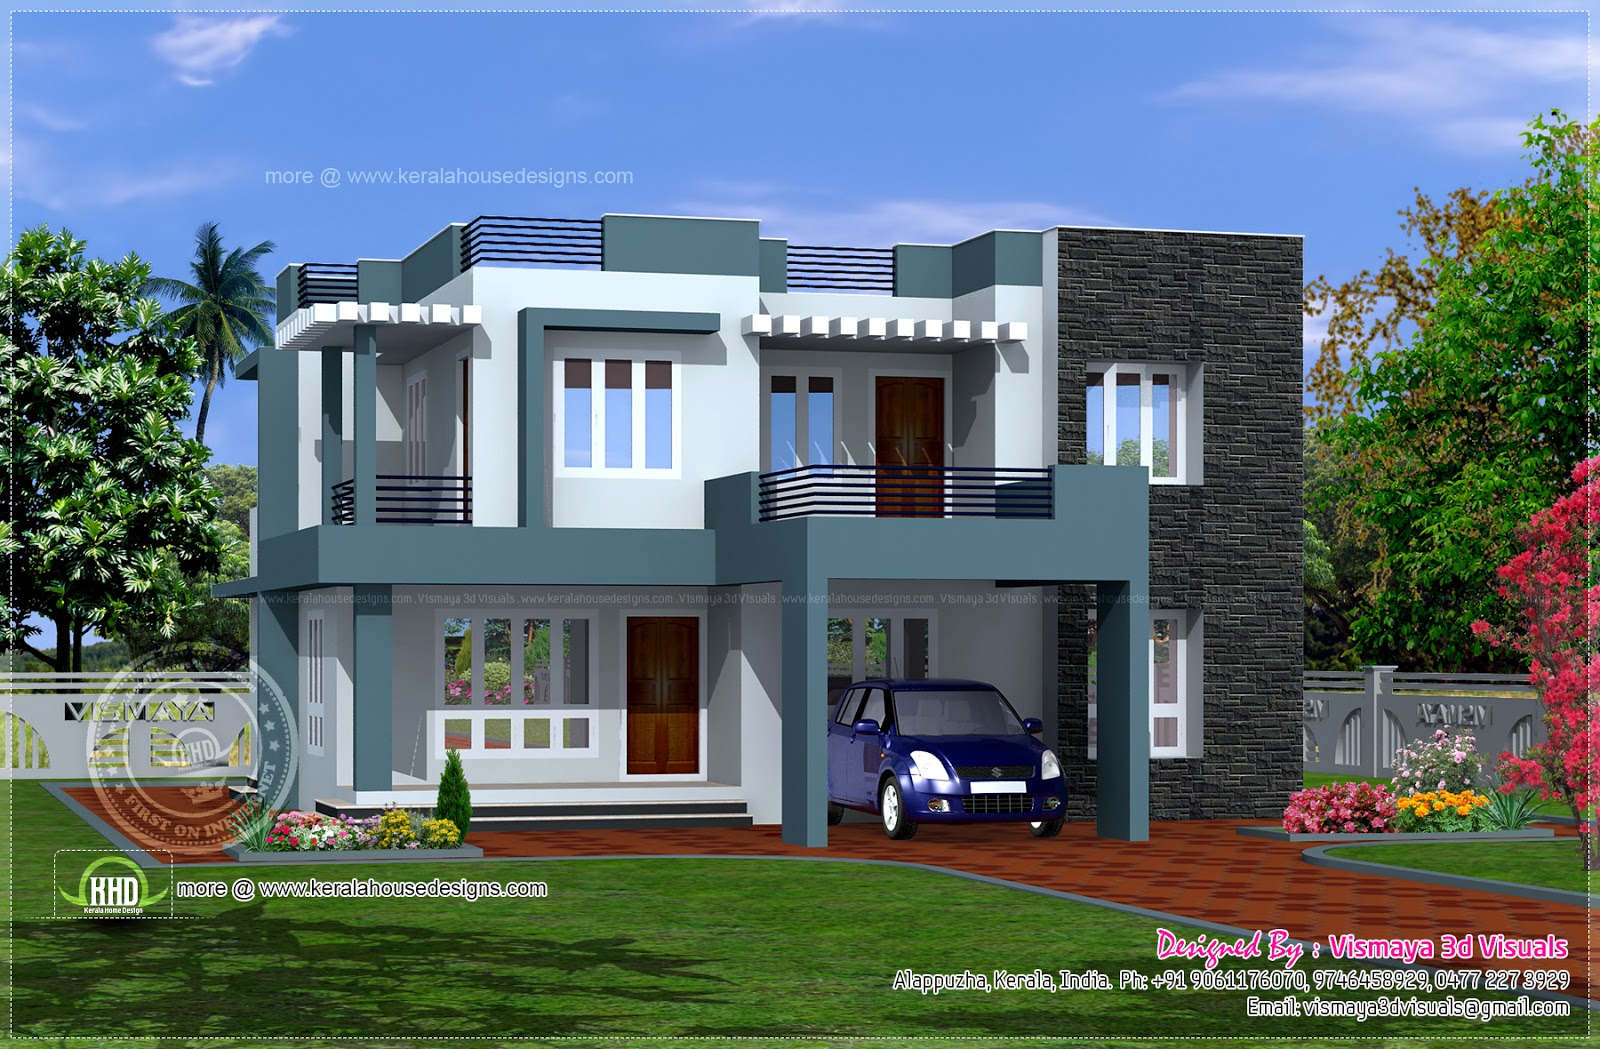 Simple contemporary style villa plan kerala home design Modern villa plan